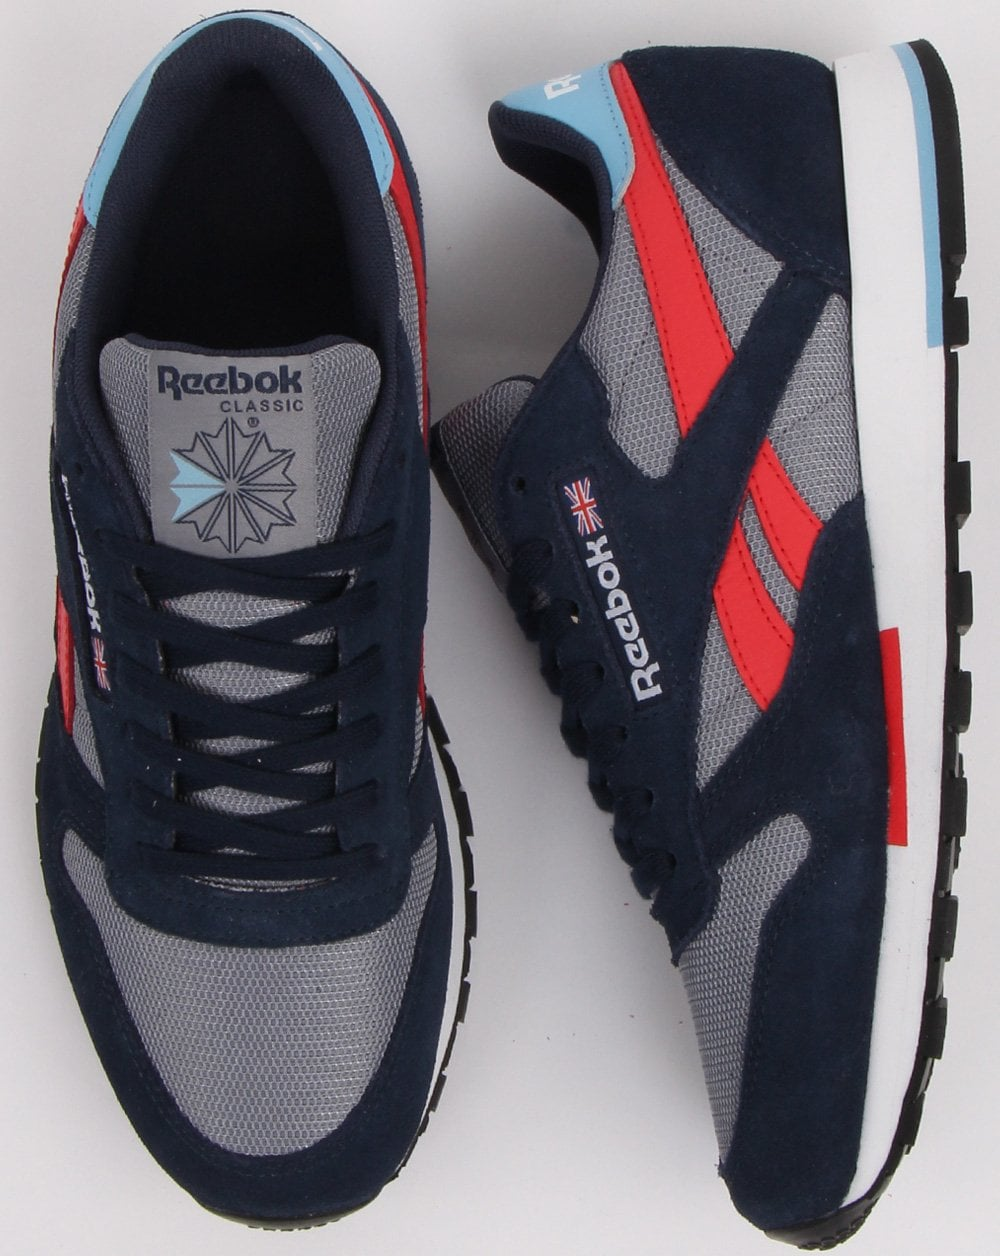 5d1d89cfec0 Reebok Classic Leather Trainers in Grey   Navy